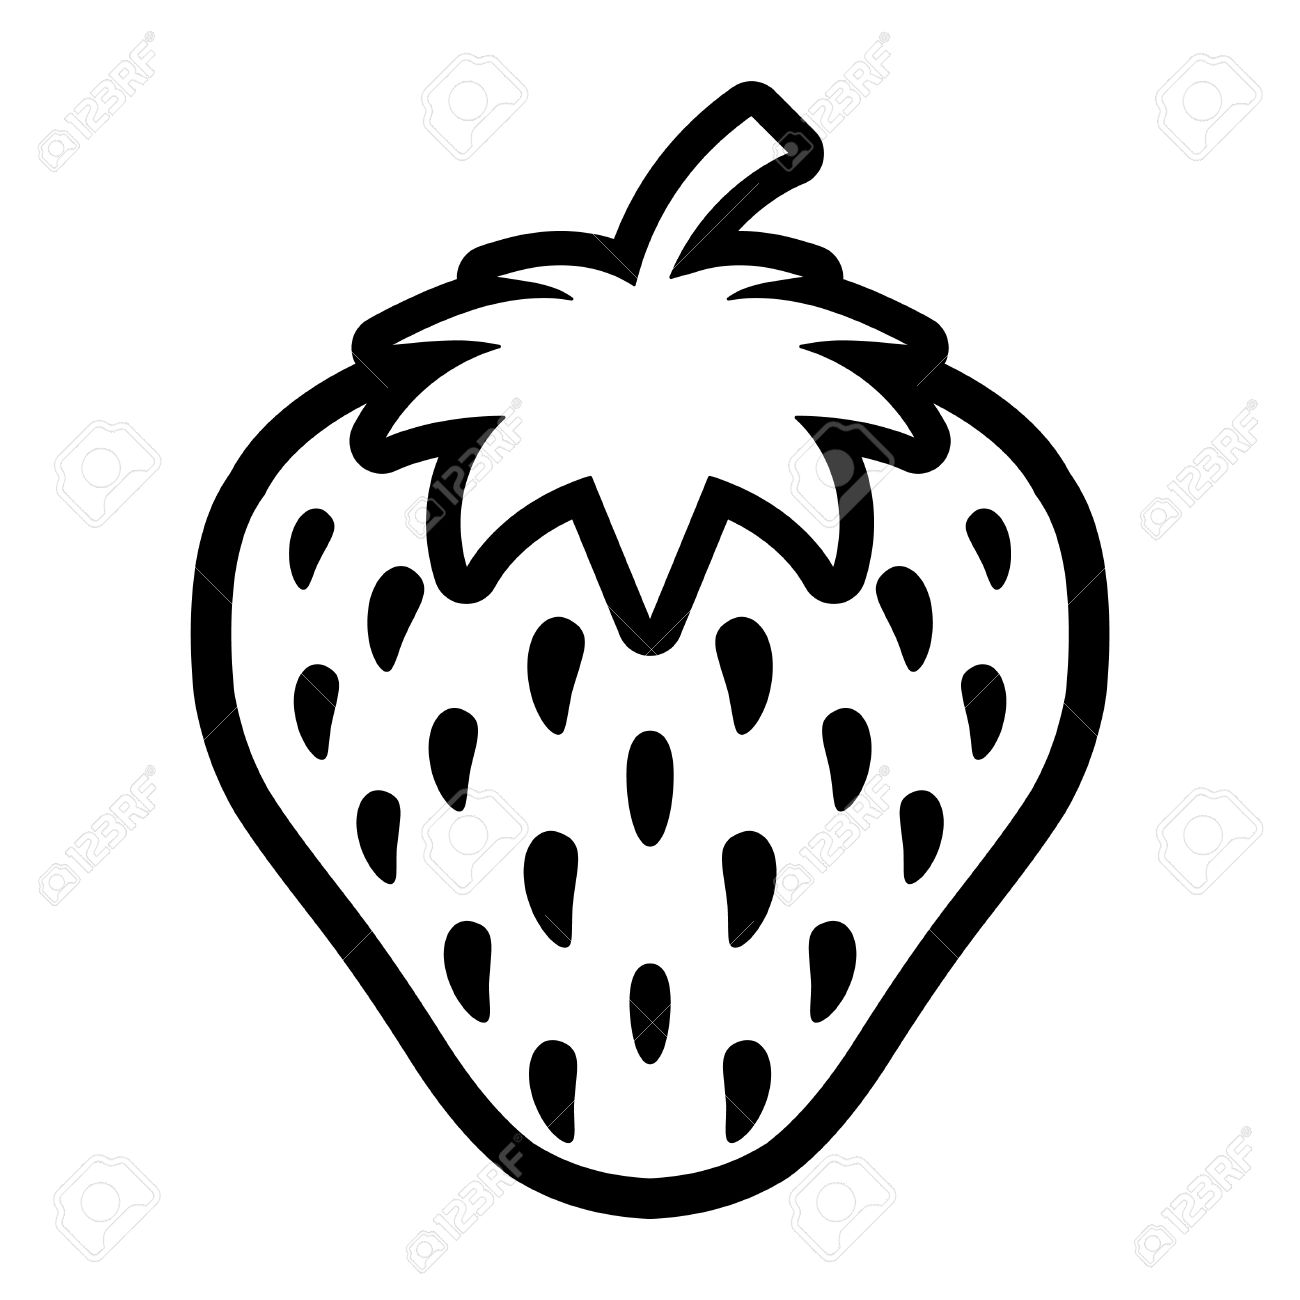 Strawberry Vector Icon Royalty Free Cliparts, Vectors, And Stock ... for Clipart Strawberry Black And White  5lpkxo